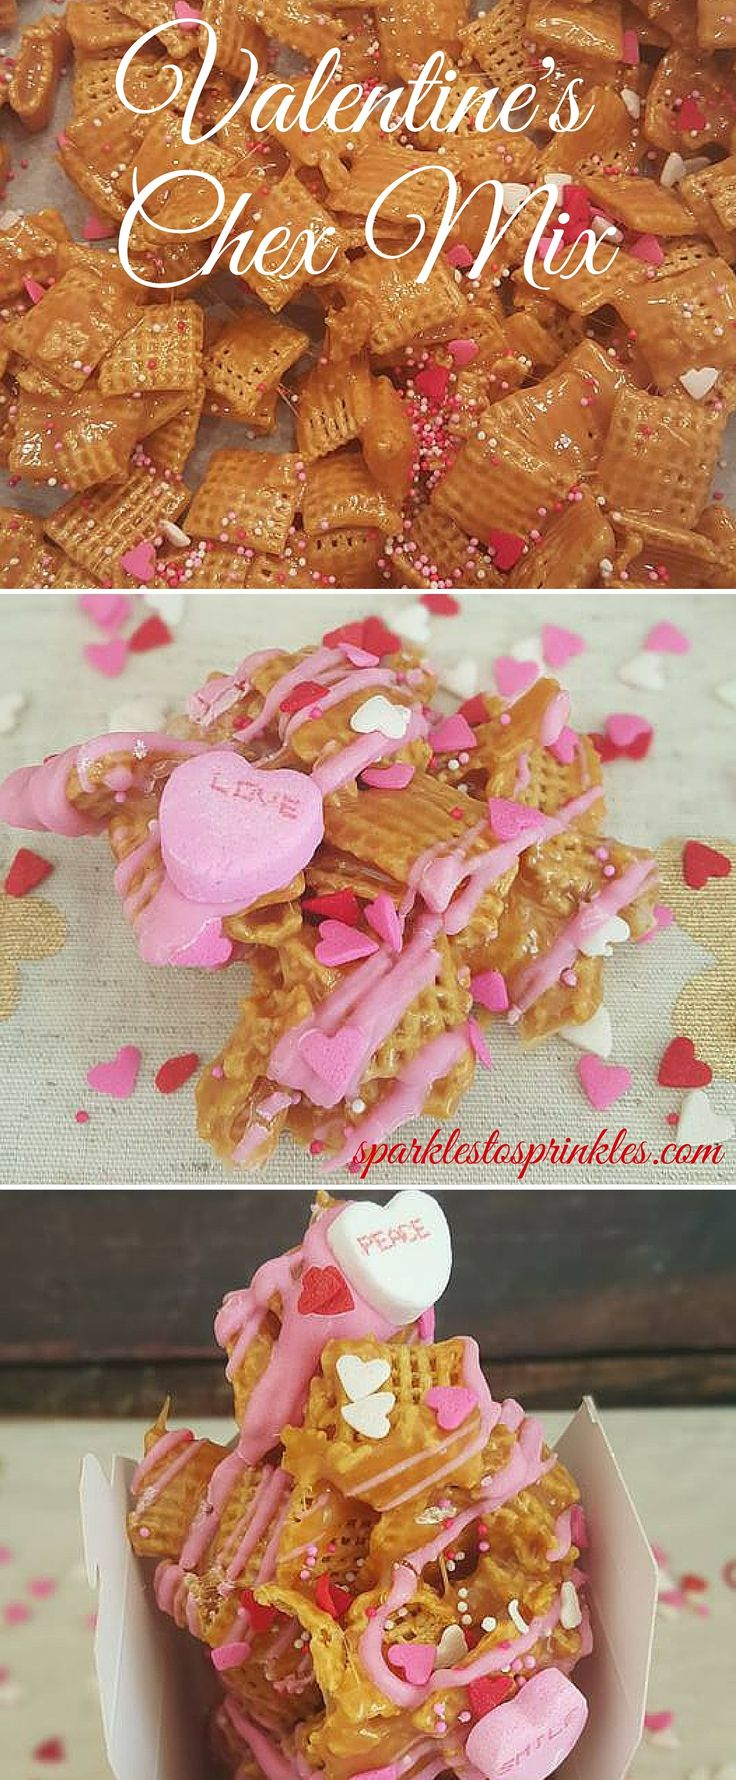 This Valentine's Chex Mix screams I LOVE you! Make a huge batch and give some to all of your LOVES. Pin for Later! #valentinesday #valentine #chexmix #snacks #easy